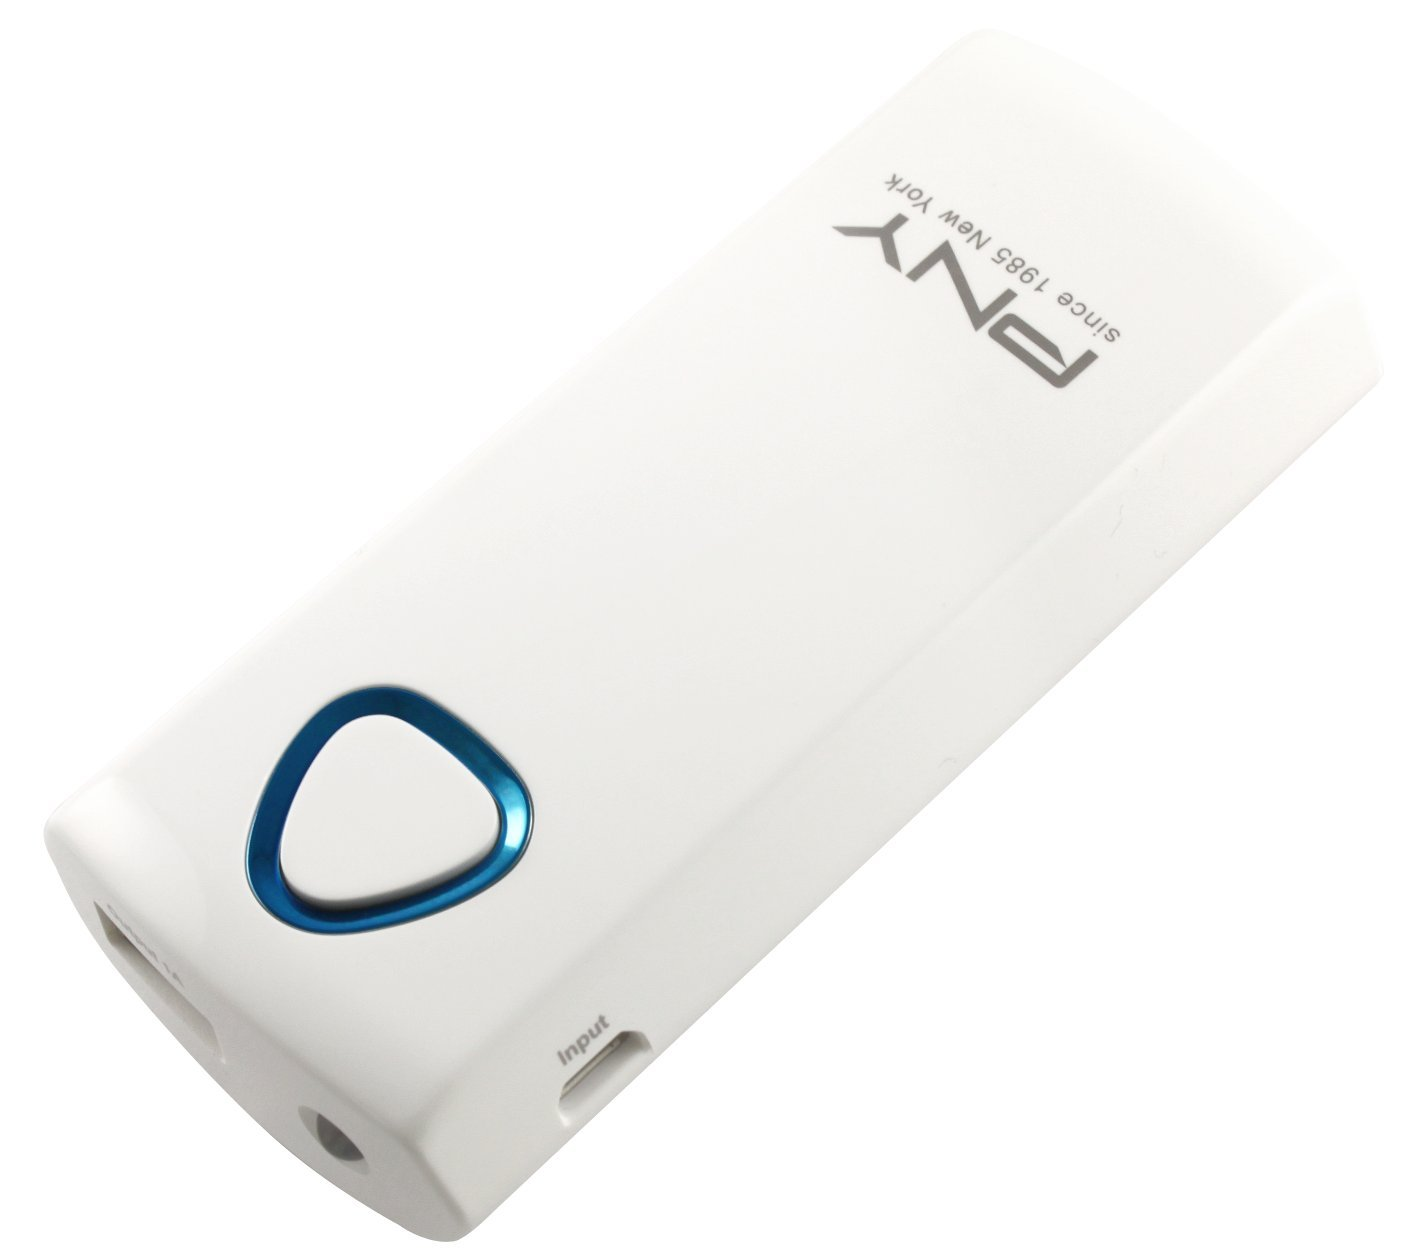 PNY BE-520 5200mAH Power Bank